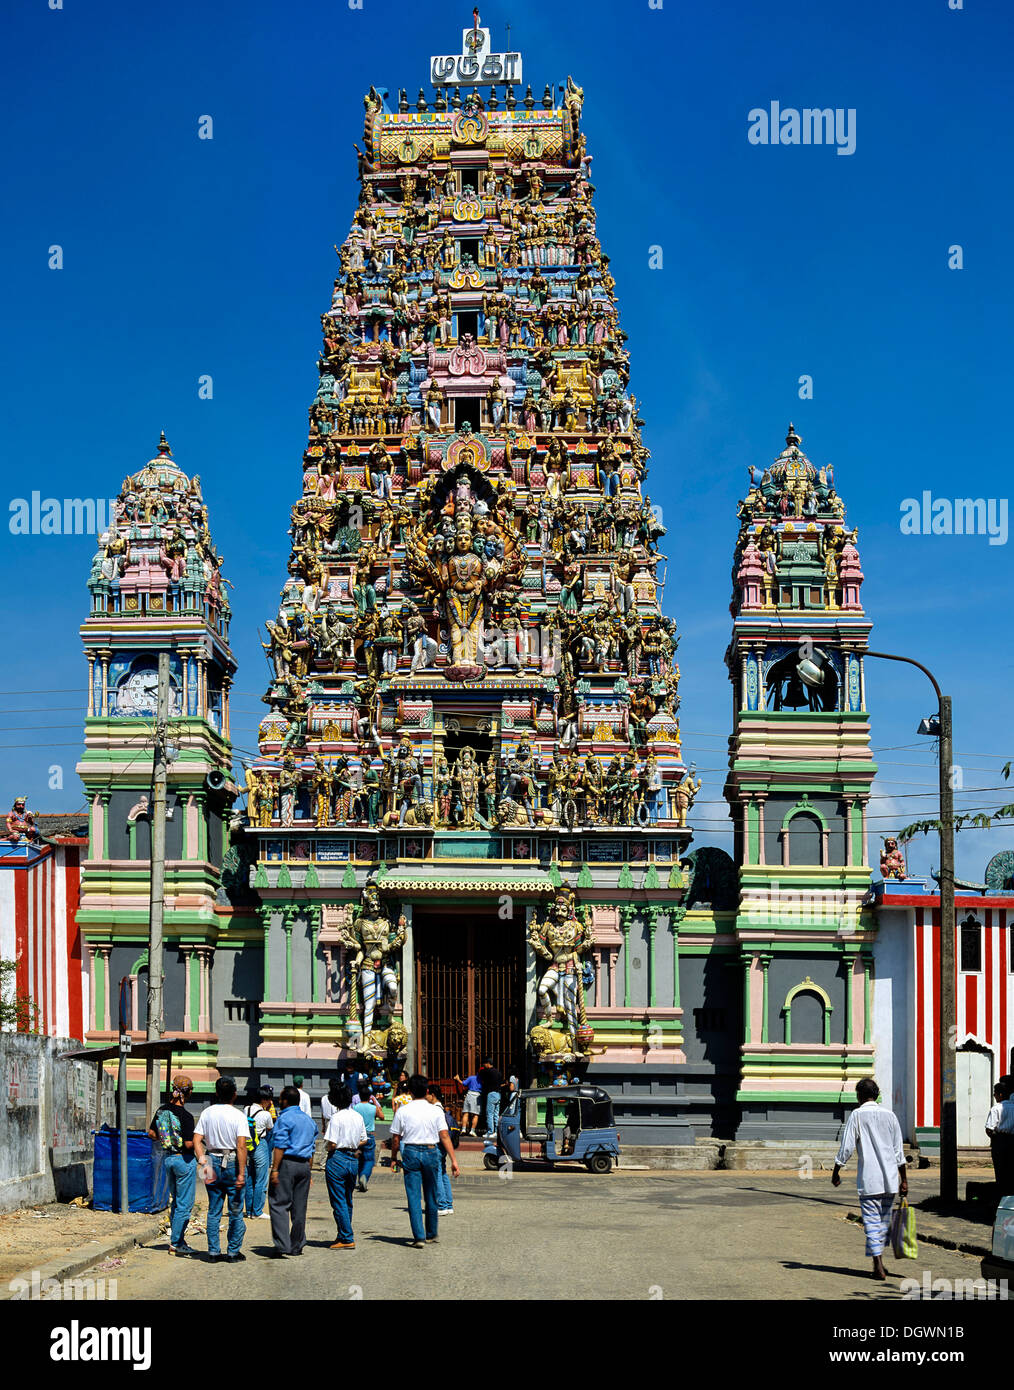 hindu singles in fort peck Although it is not mandatory for a hindu to visit a temple regularly, they play a vital role in hindu society and culture learn about the basics of what a hindu temple is all about.